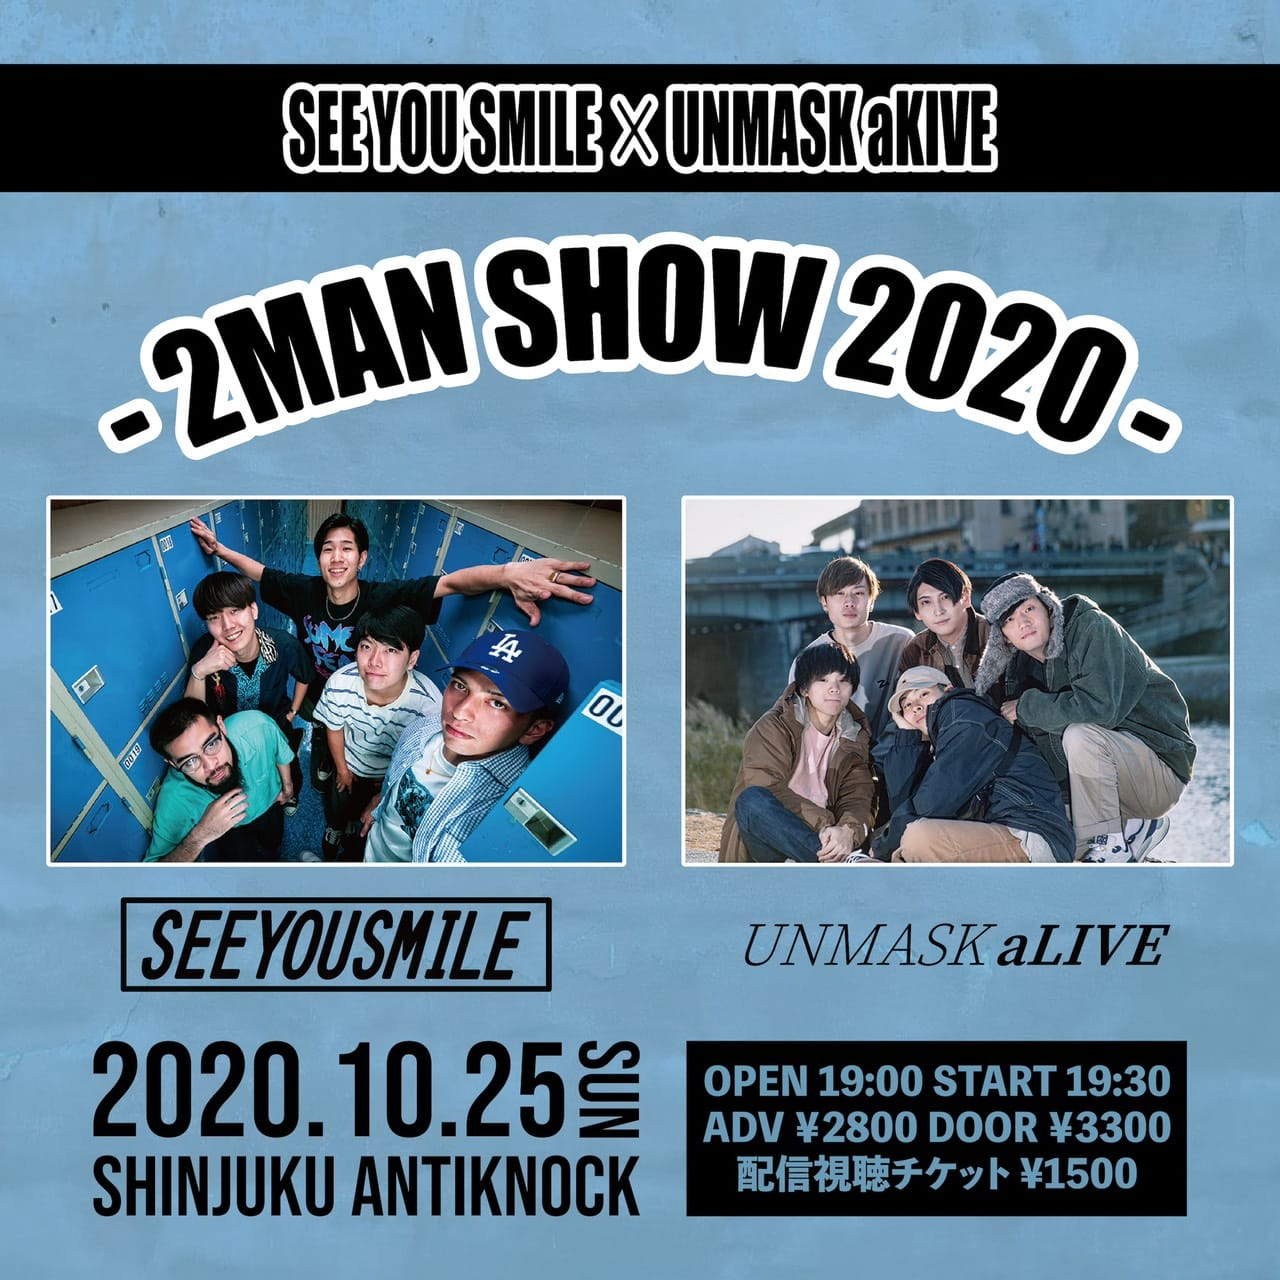 SEE YOU SMILE×UNMASK aLIVE -2MAN SHOW 2020-